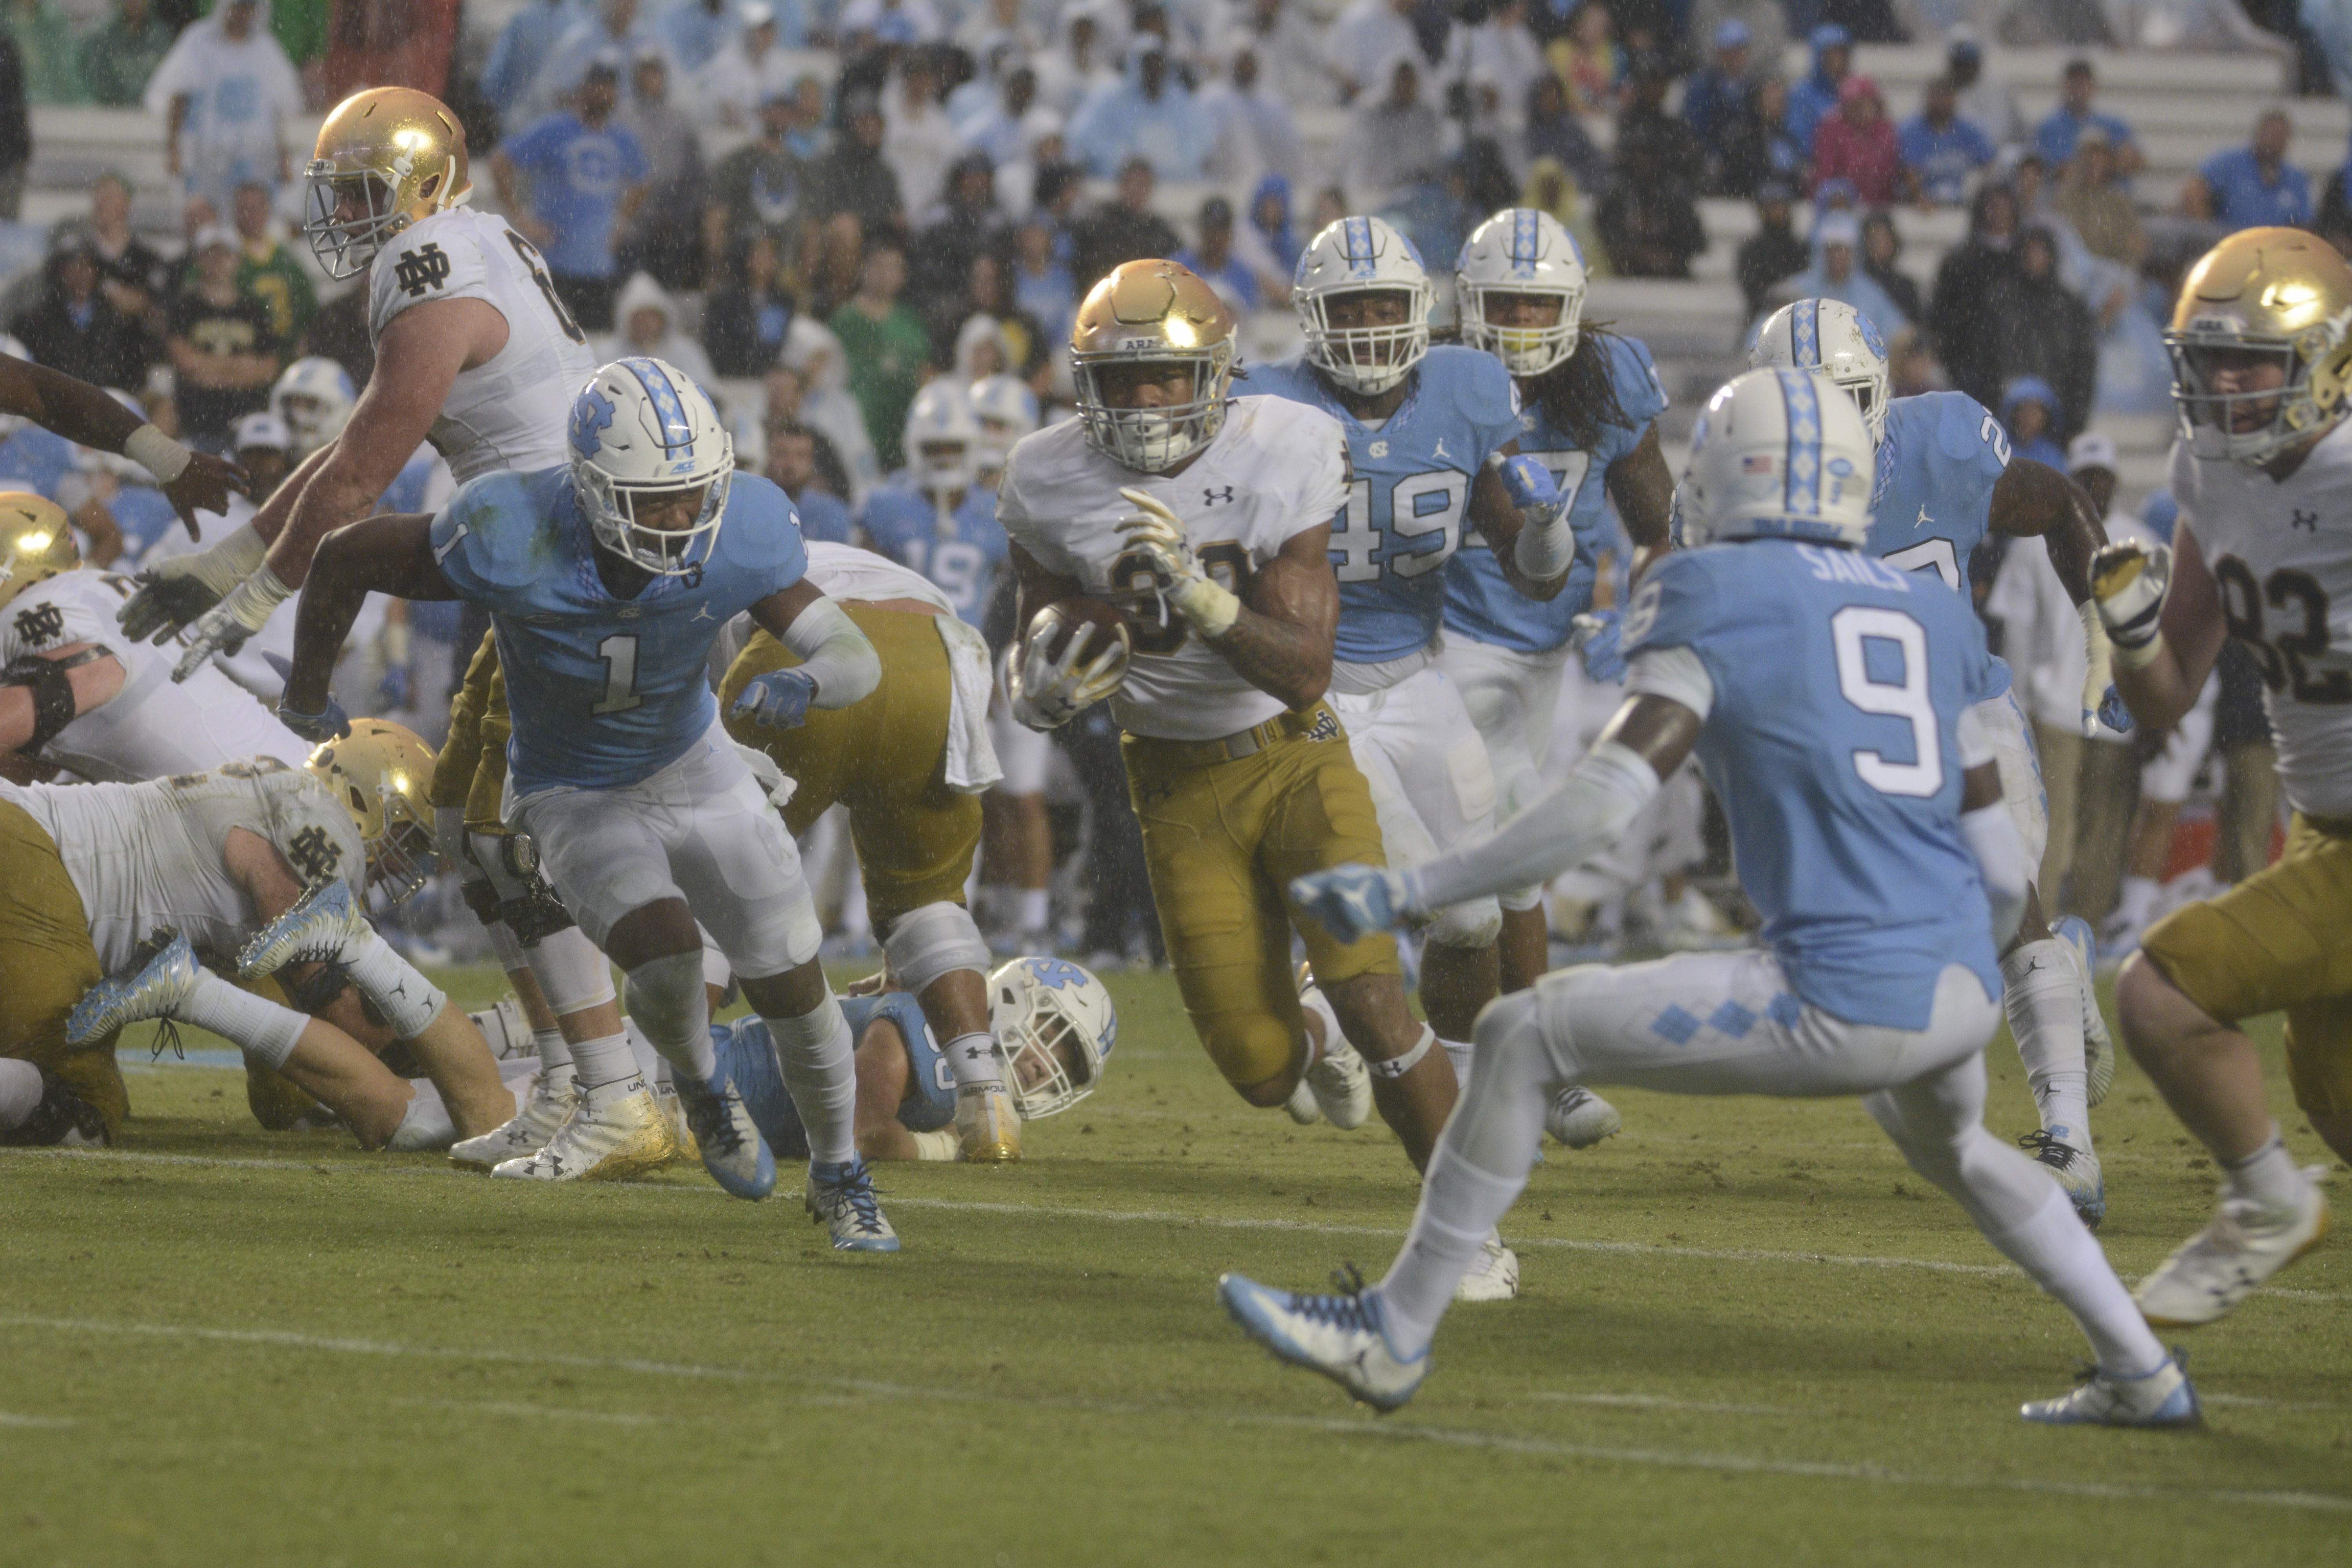 Irish sophomore running back Deon McIntosh skirts around a defender during Notre Dame's 33-10 win over North Carolina on Saturday at Kenan Memorial Stadium in Chapel Hill, North Carolina.